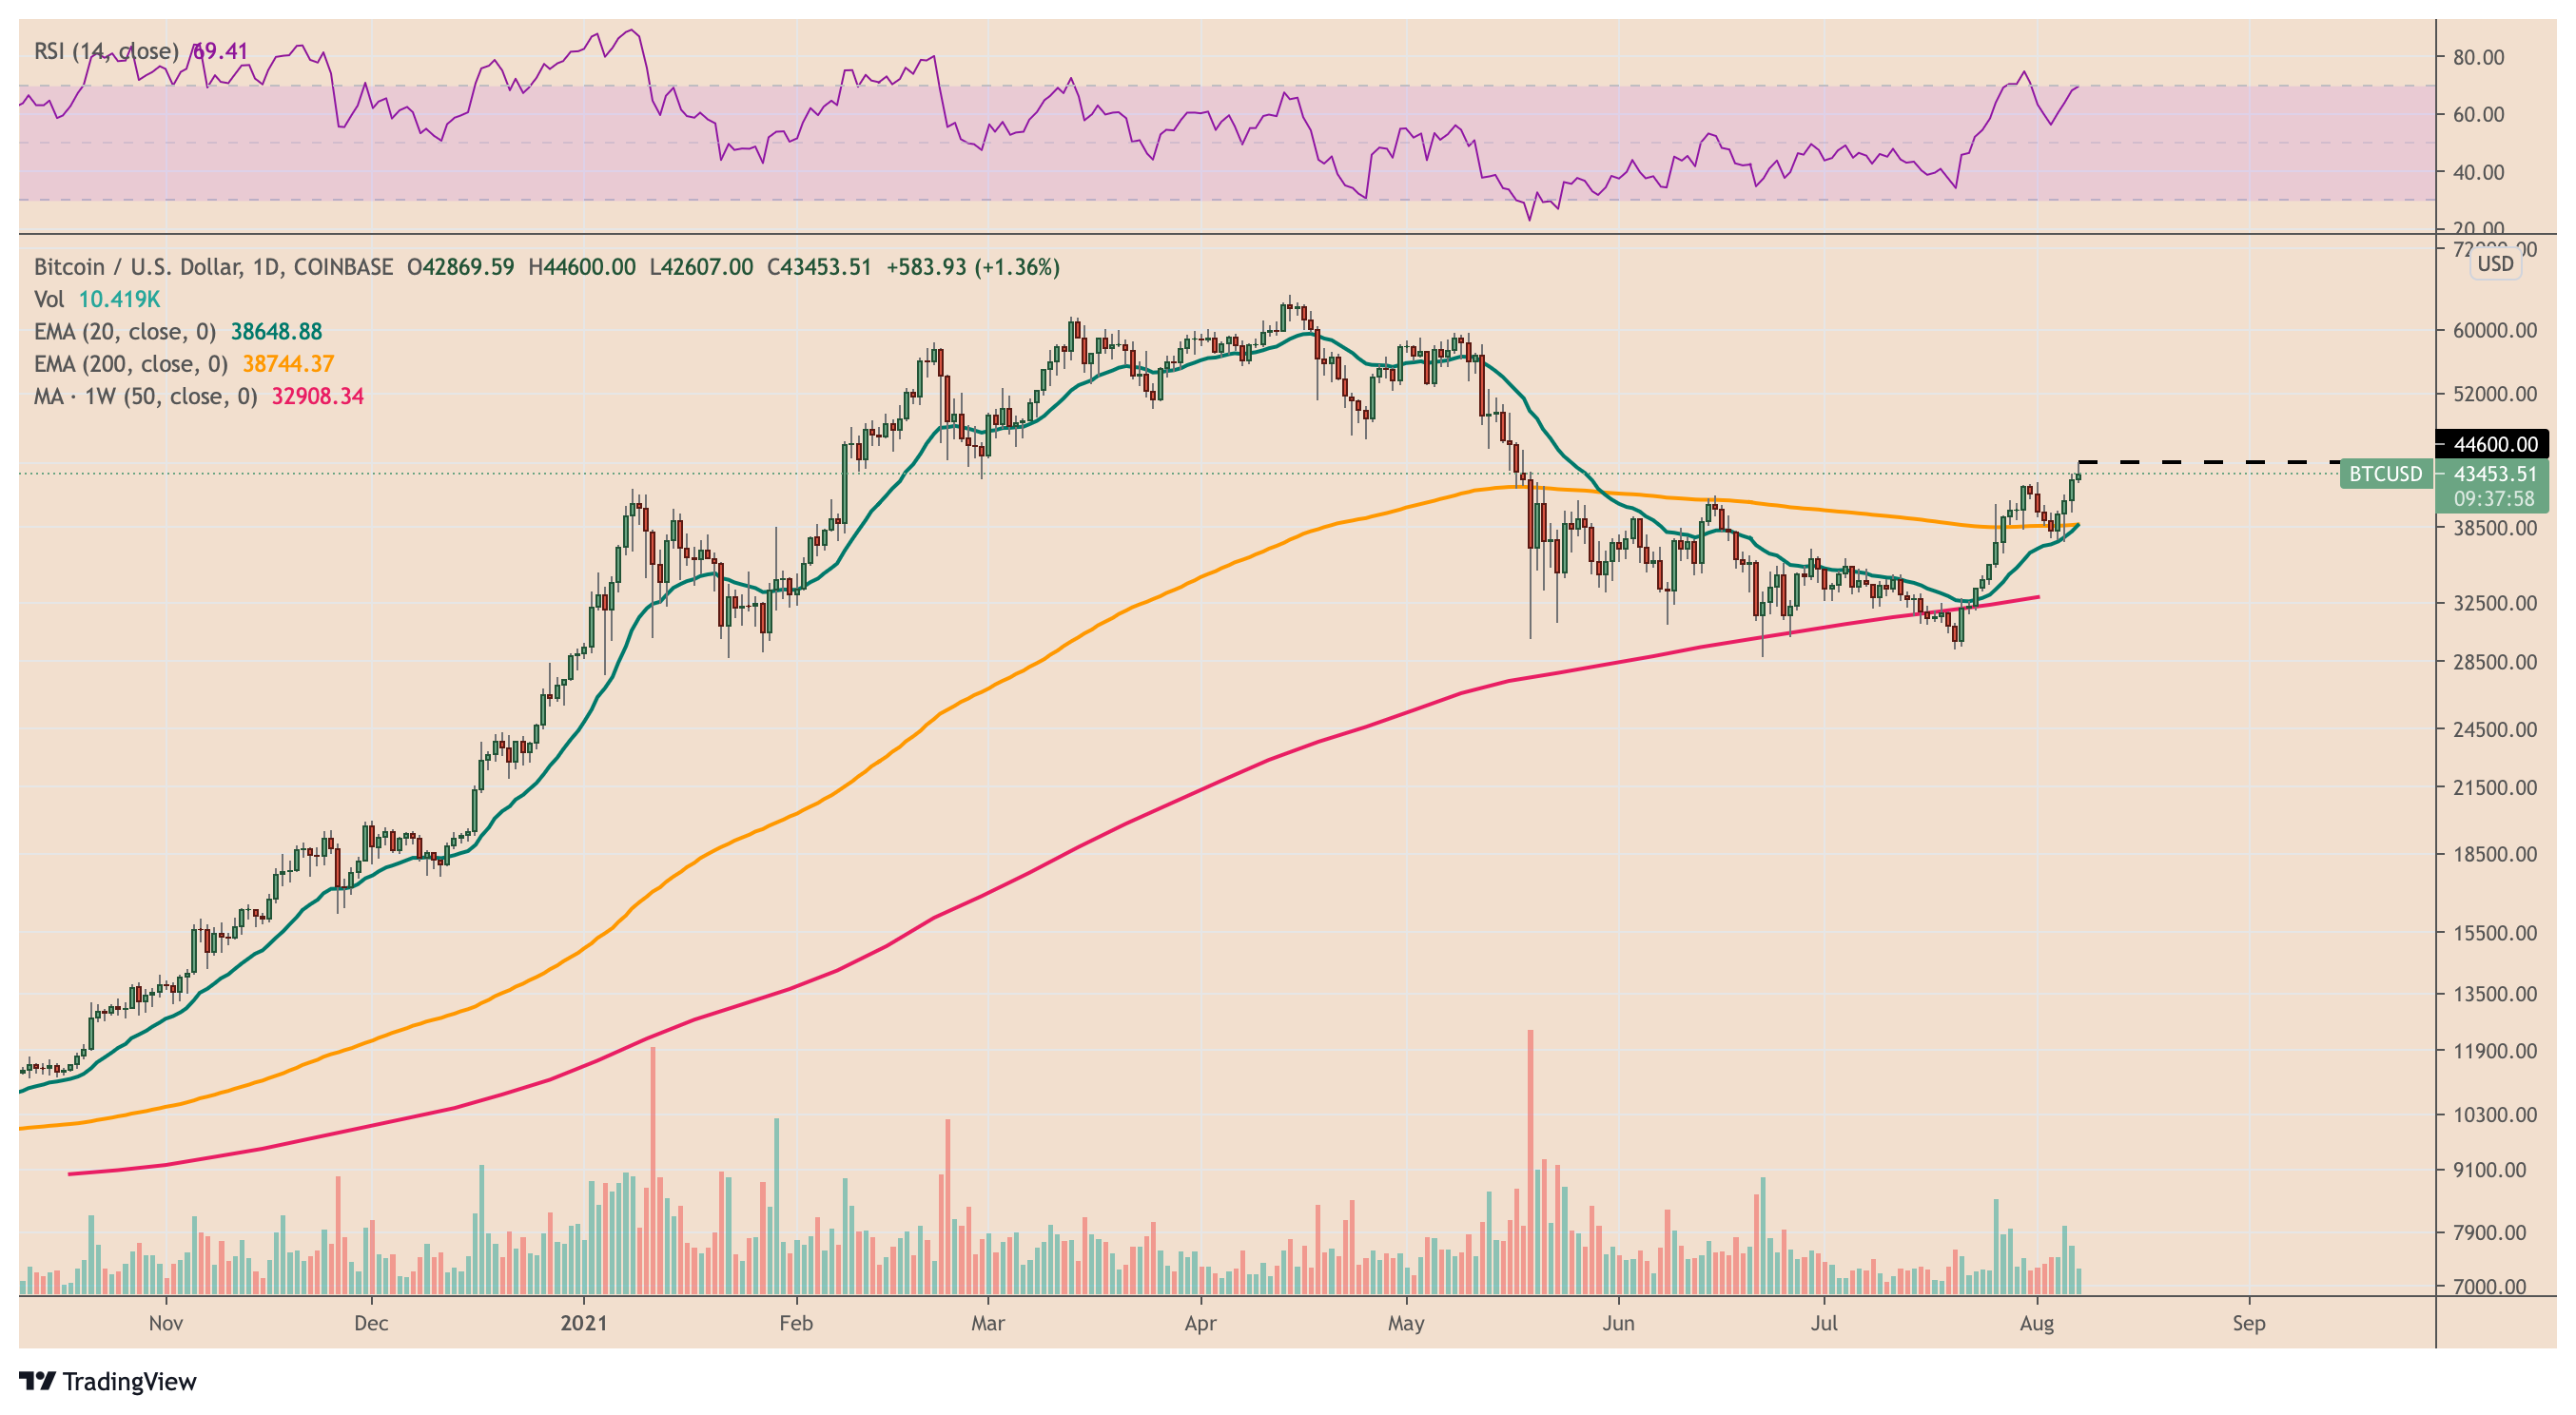 Bitcoin has wiped out possible loss as BTC price rebounds to $ 44,000 9